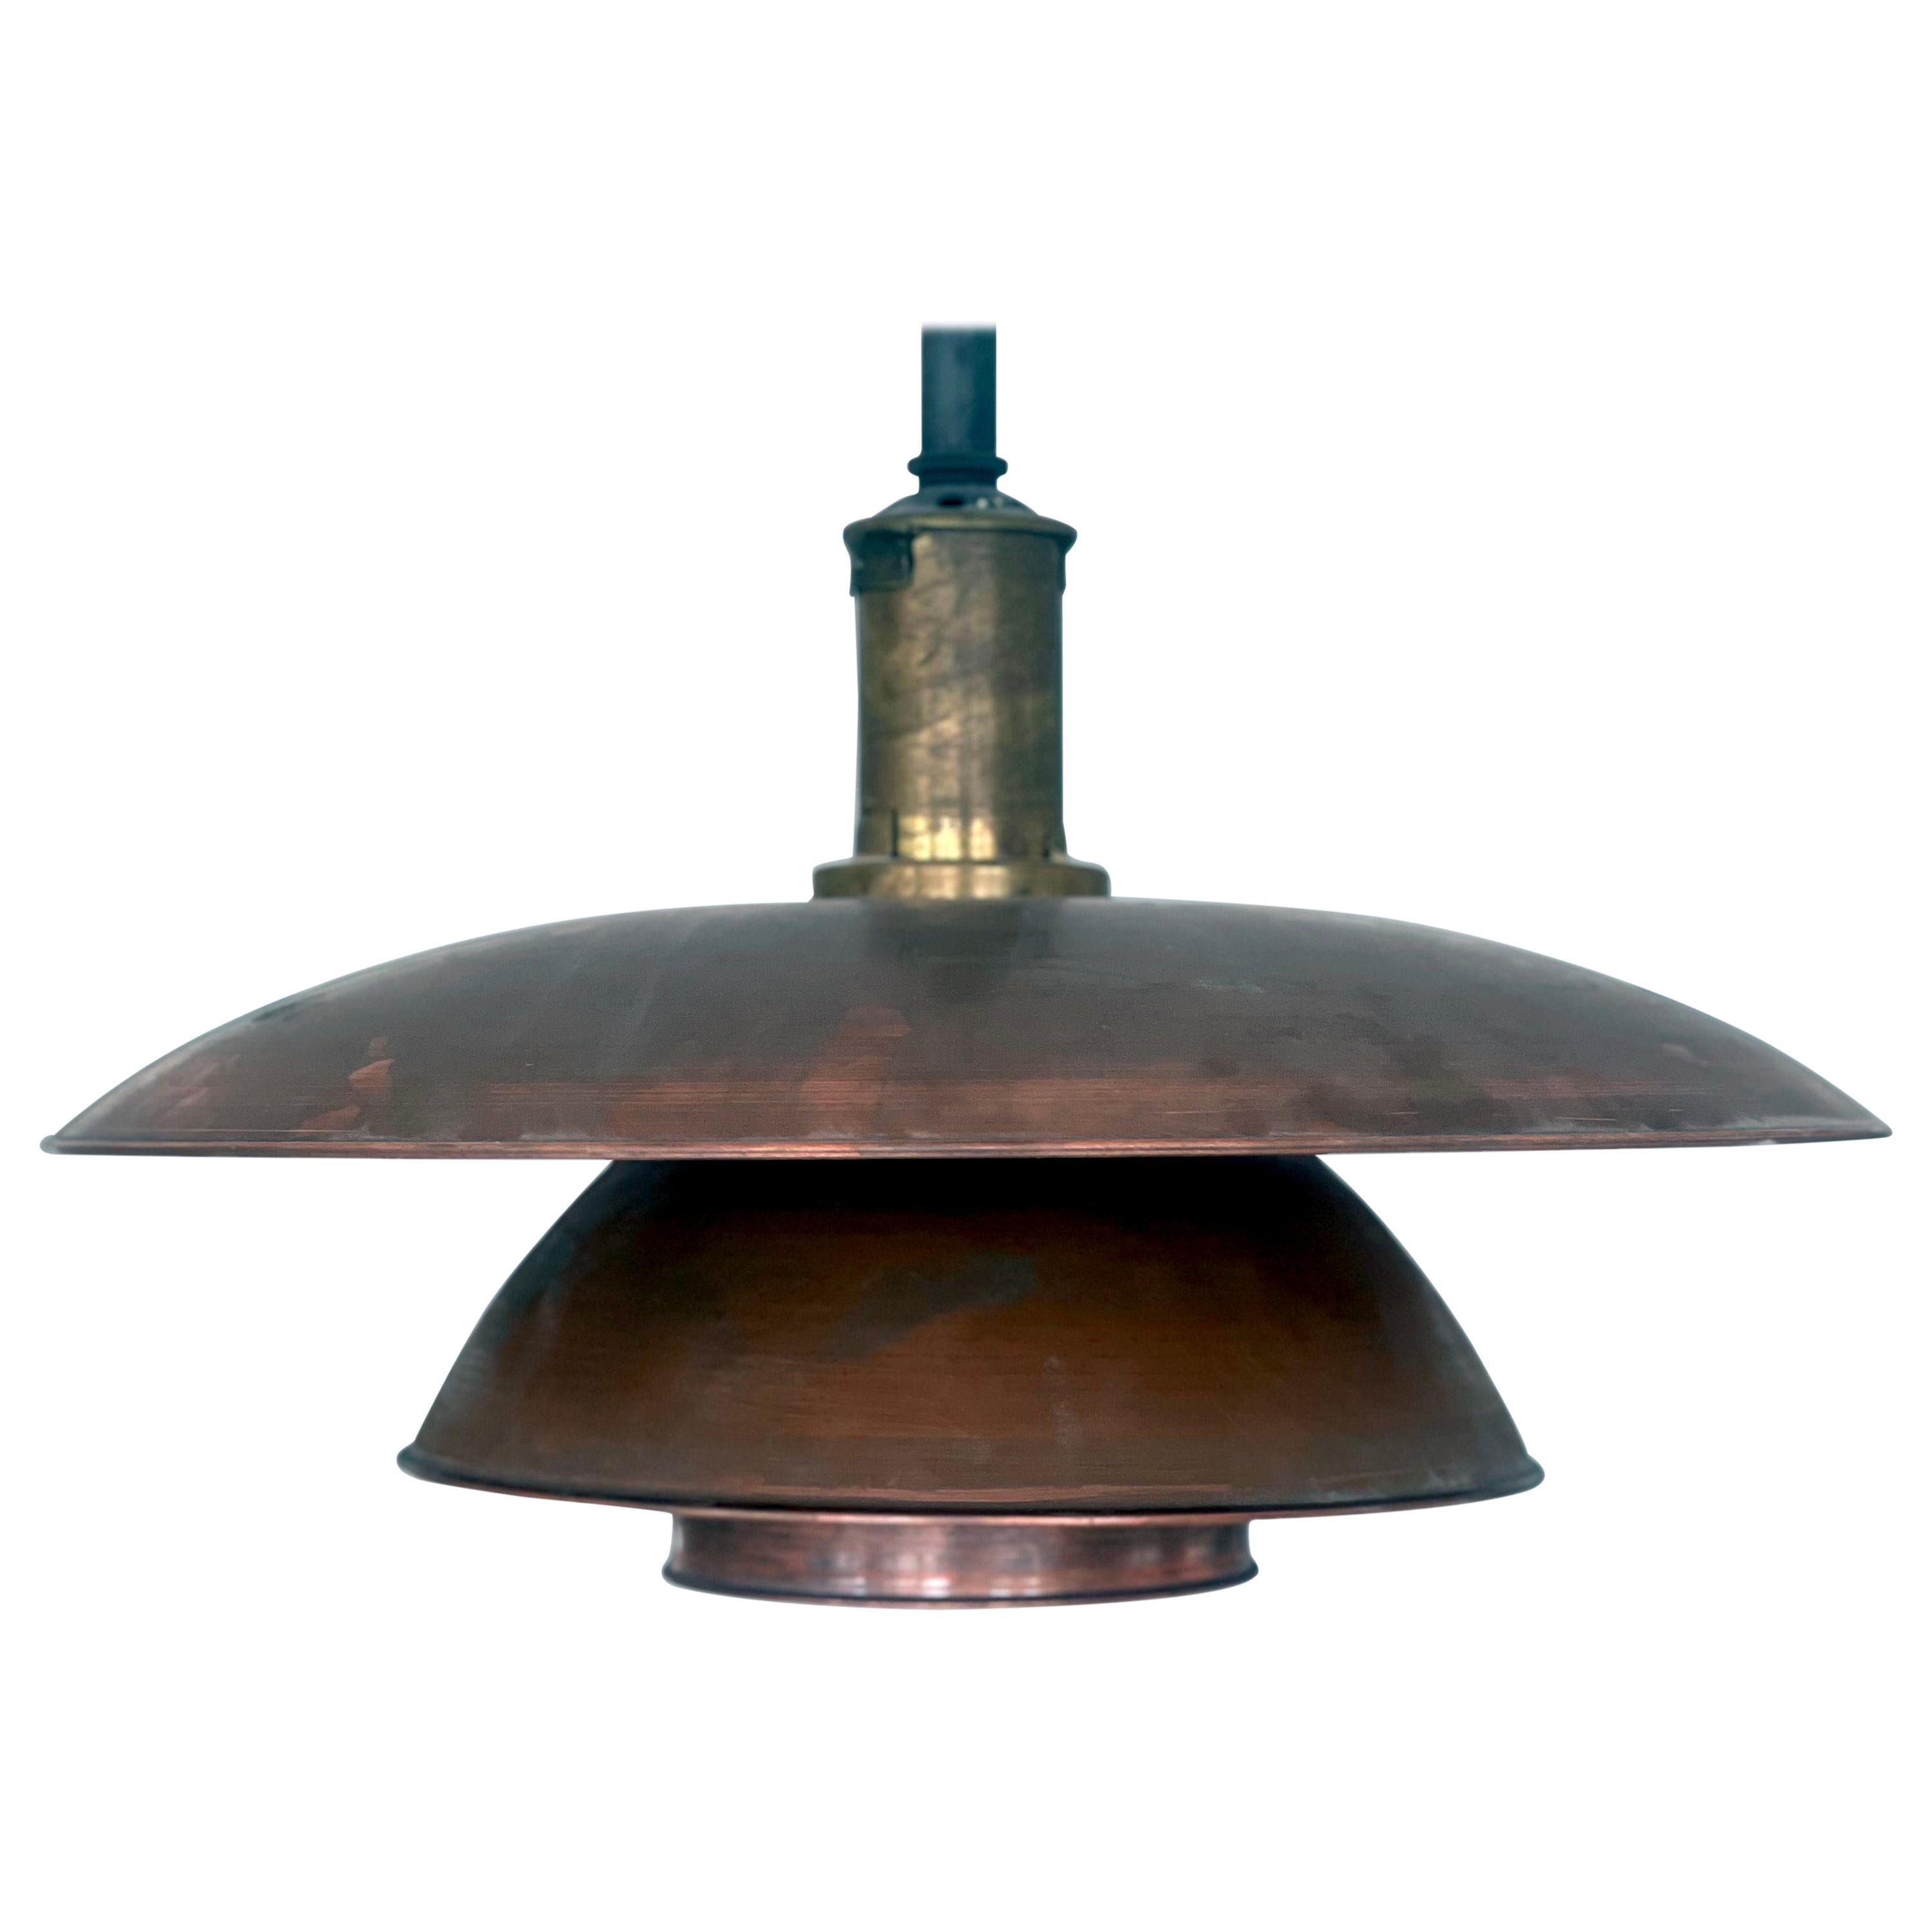 Early and Large Poul Henningsen Pendant 5/5 Pat, Appl, in Copper, Denmark, 1928